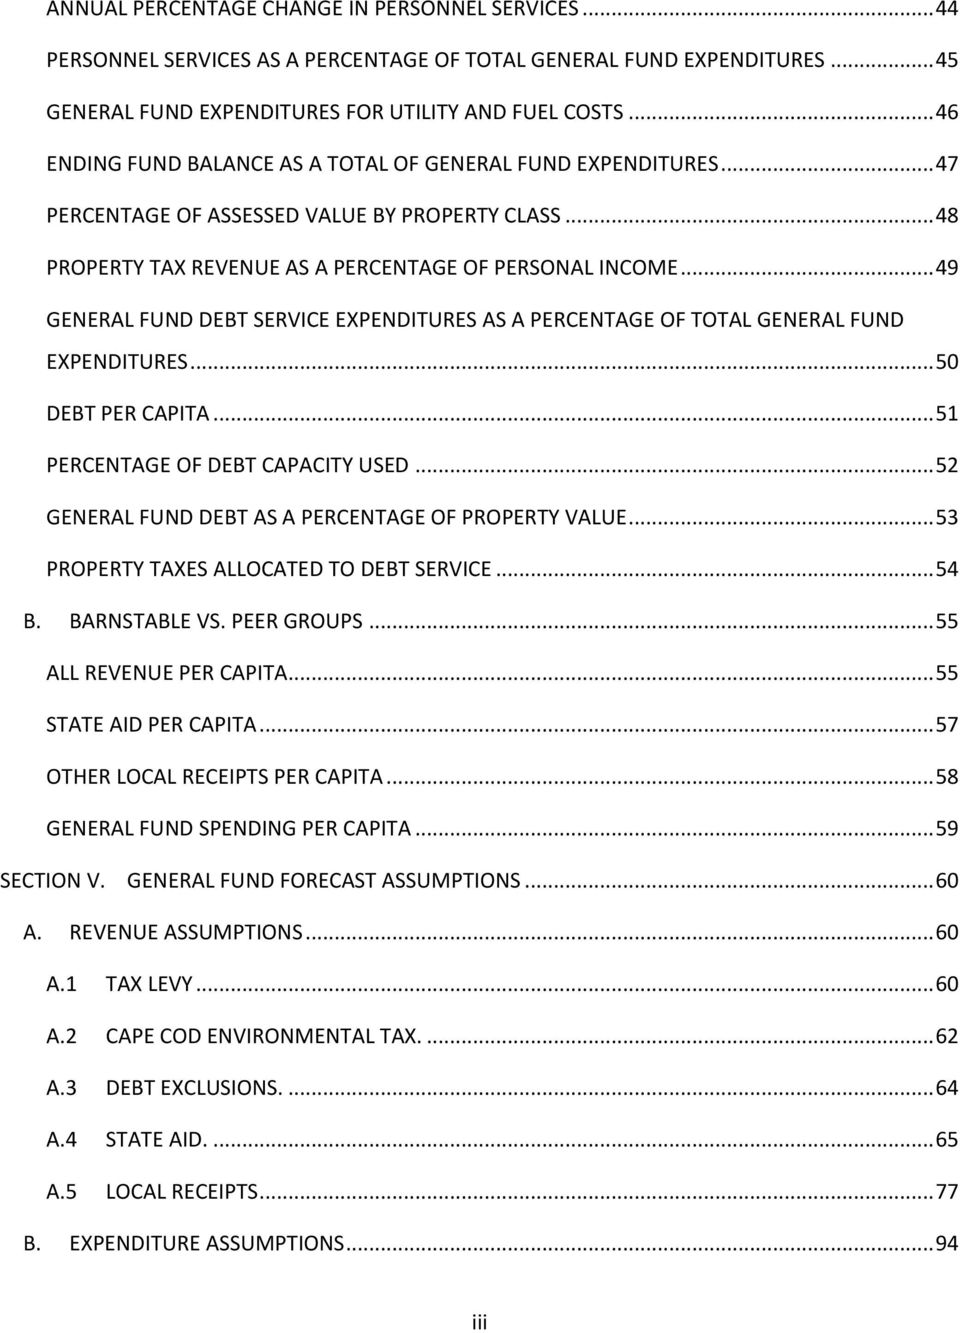 .. 49 GENERAL FUND DEBT SERVICE EXPENDITURES AS A PERCENTAGE OF TOTAL GENERAL FUND EXPENDITURES... 50 DEBT PER CAPITA... 51 PERCENTAGE OF DEBT CAPACITY USED.